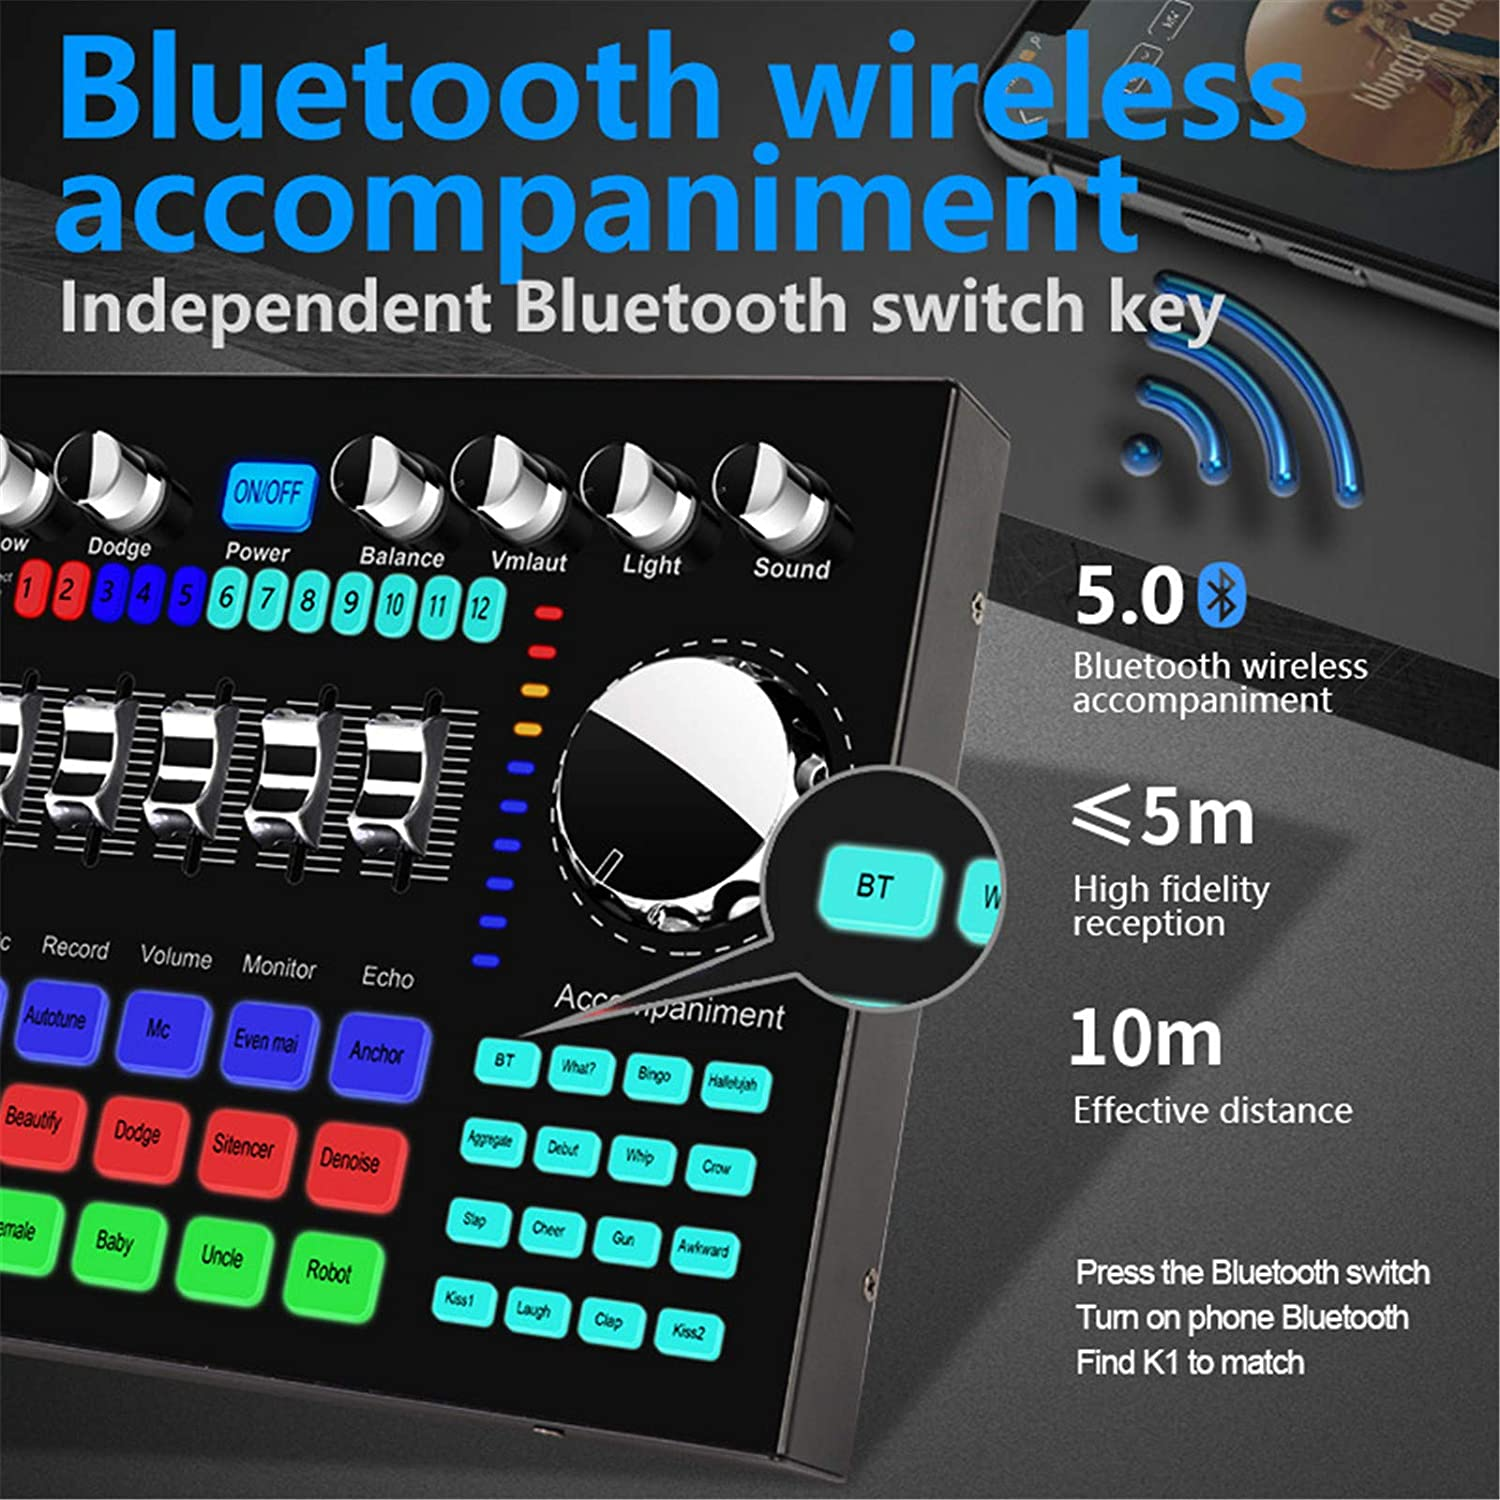 Portable Blueteeth Voice Converter Sound Card with Multiple Sound Effects Sound Card Karaoke Sound Mixer Board for Music Recording